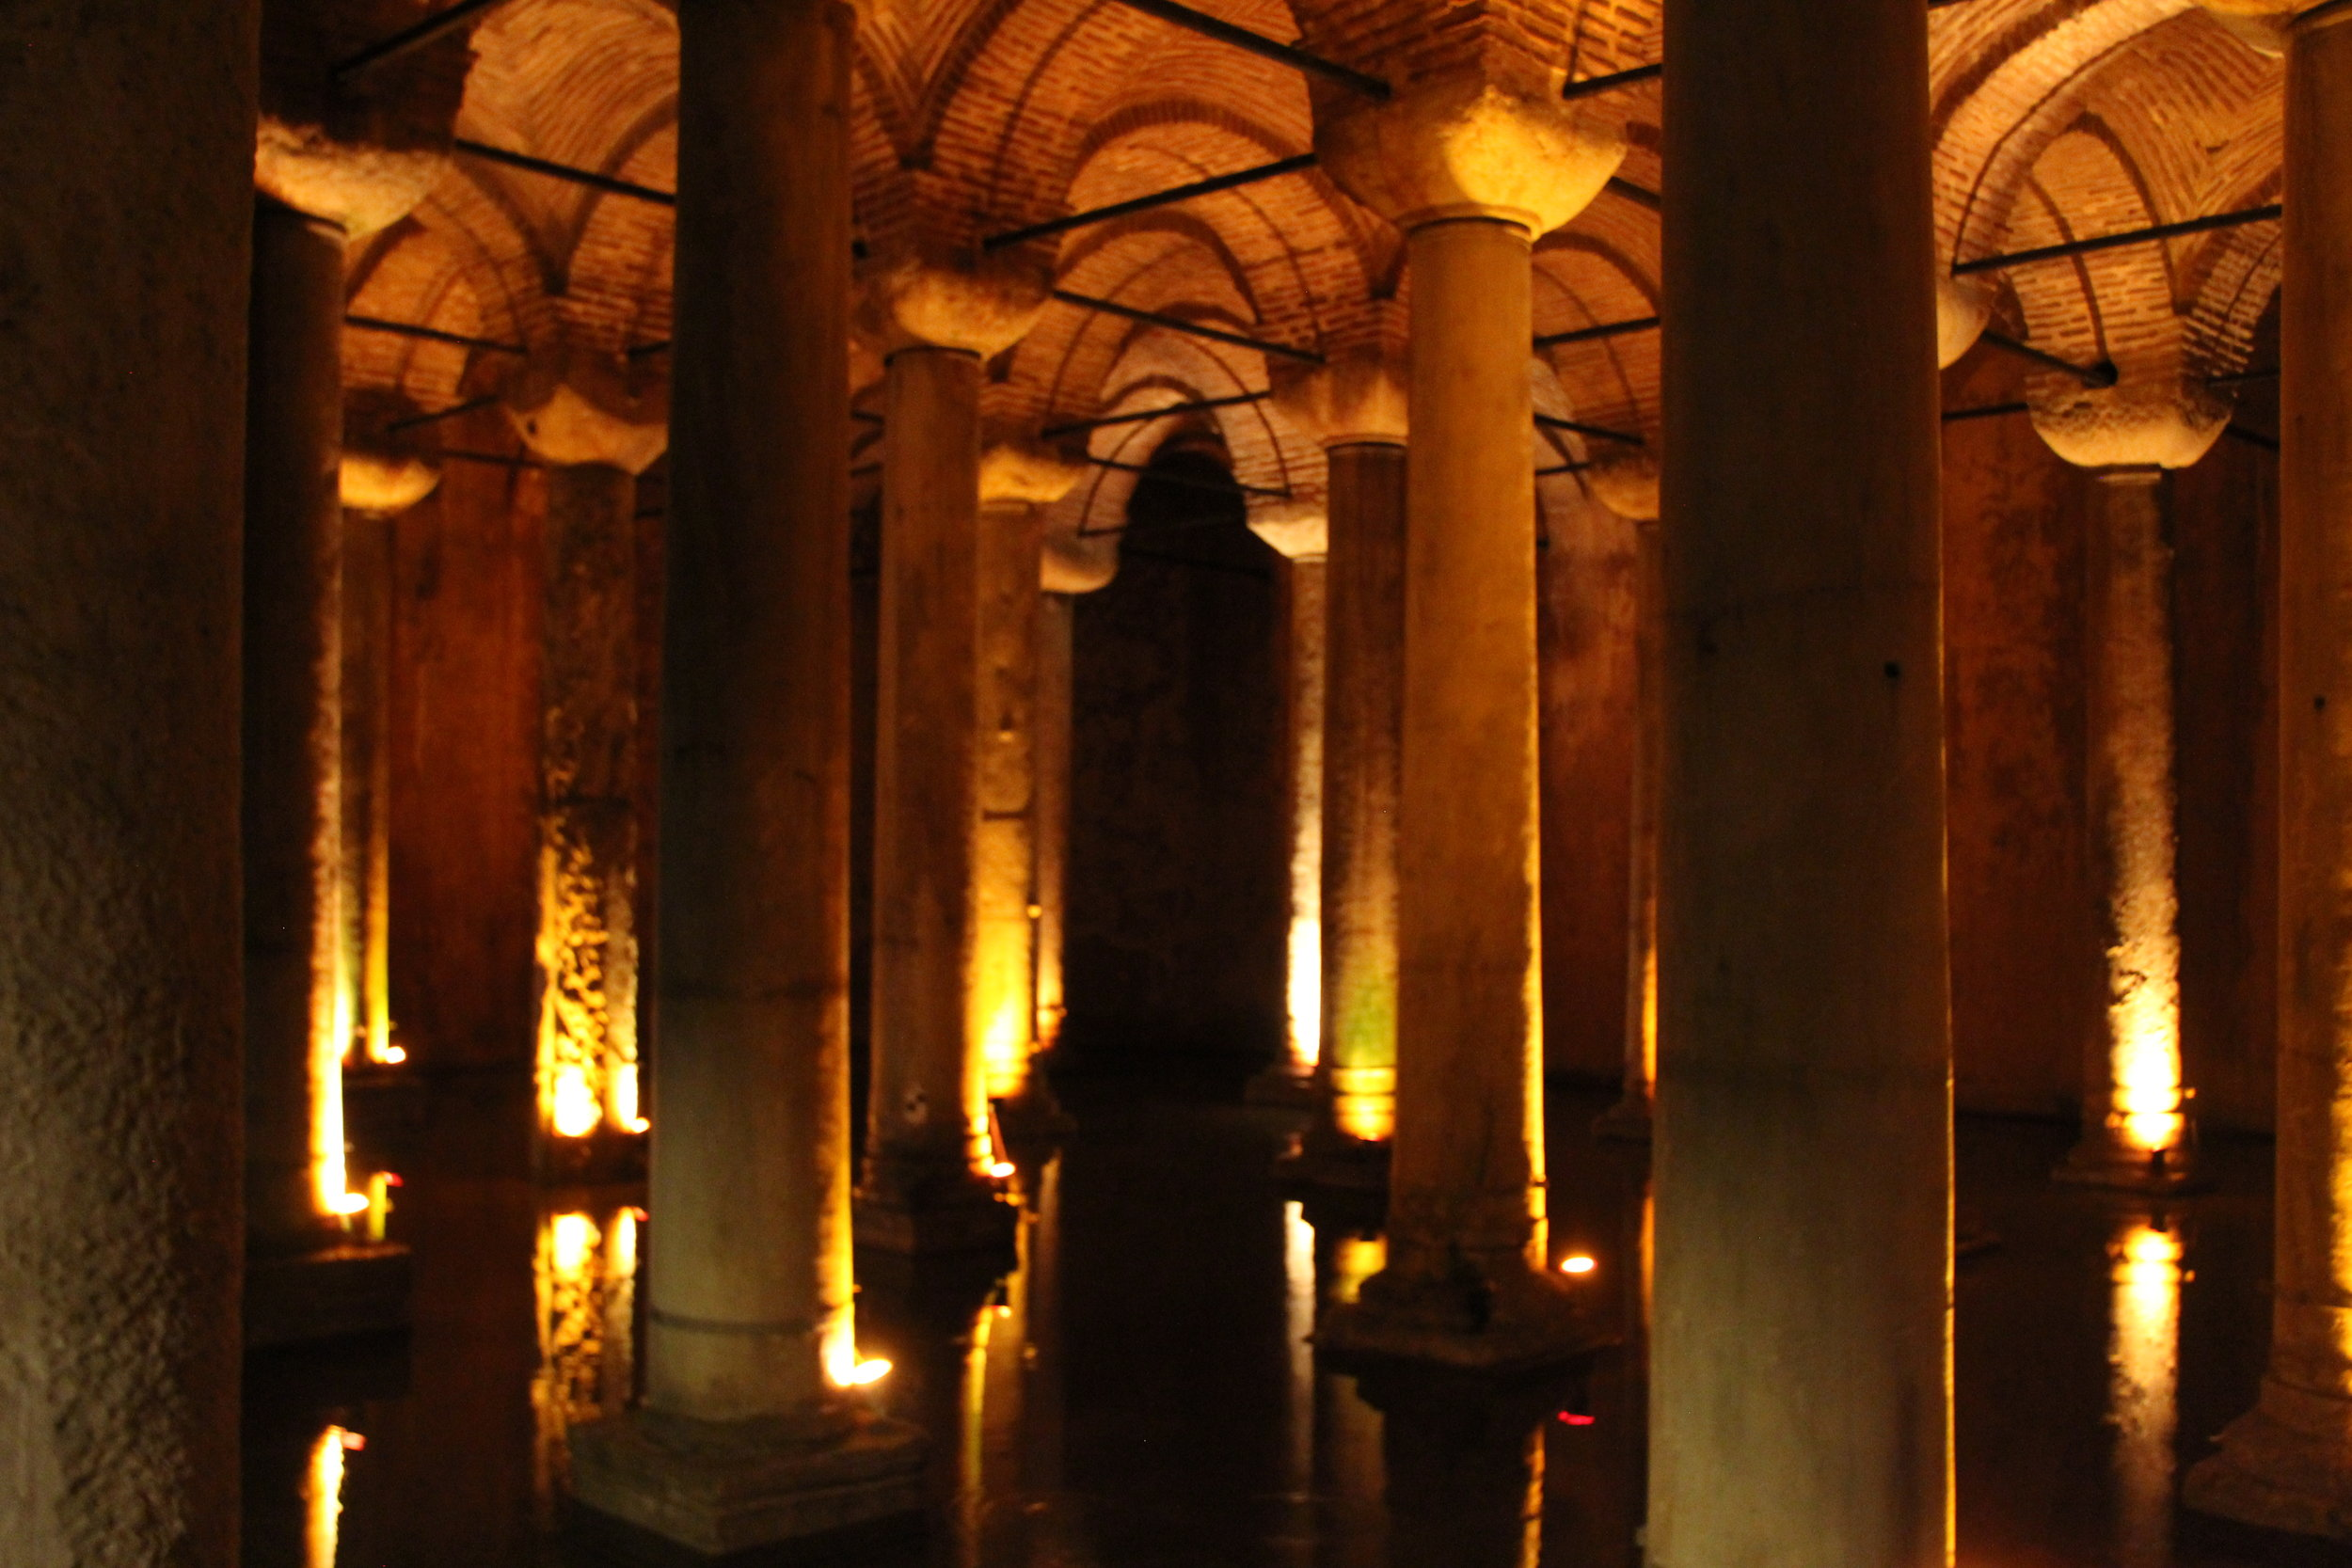 A humble 6th century AD cistern, filled with water to withstand siege for years, now a beauty in it's own right.